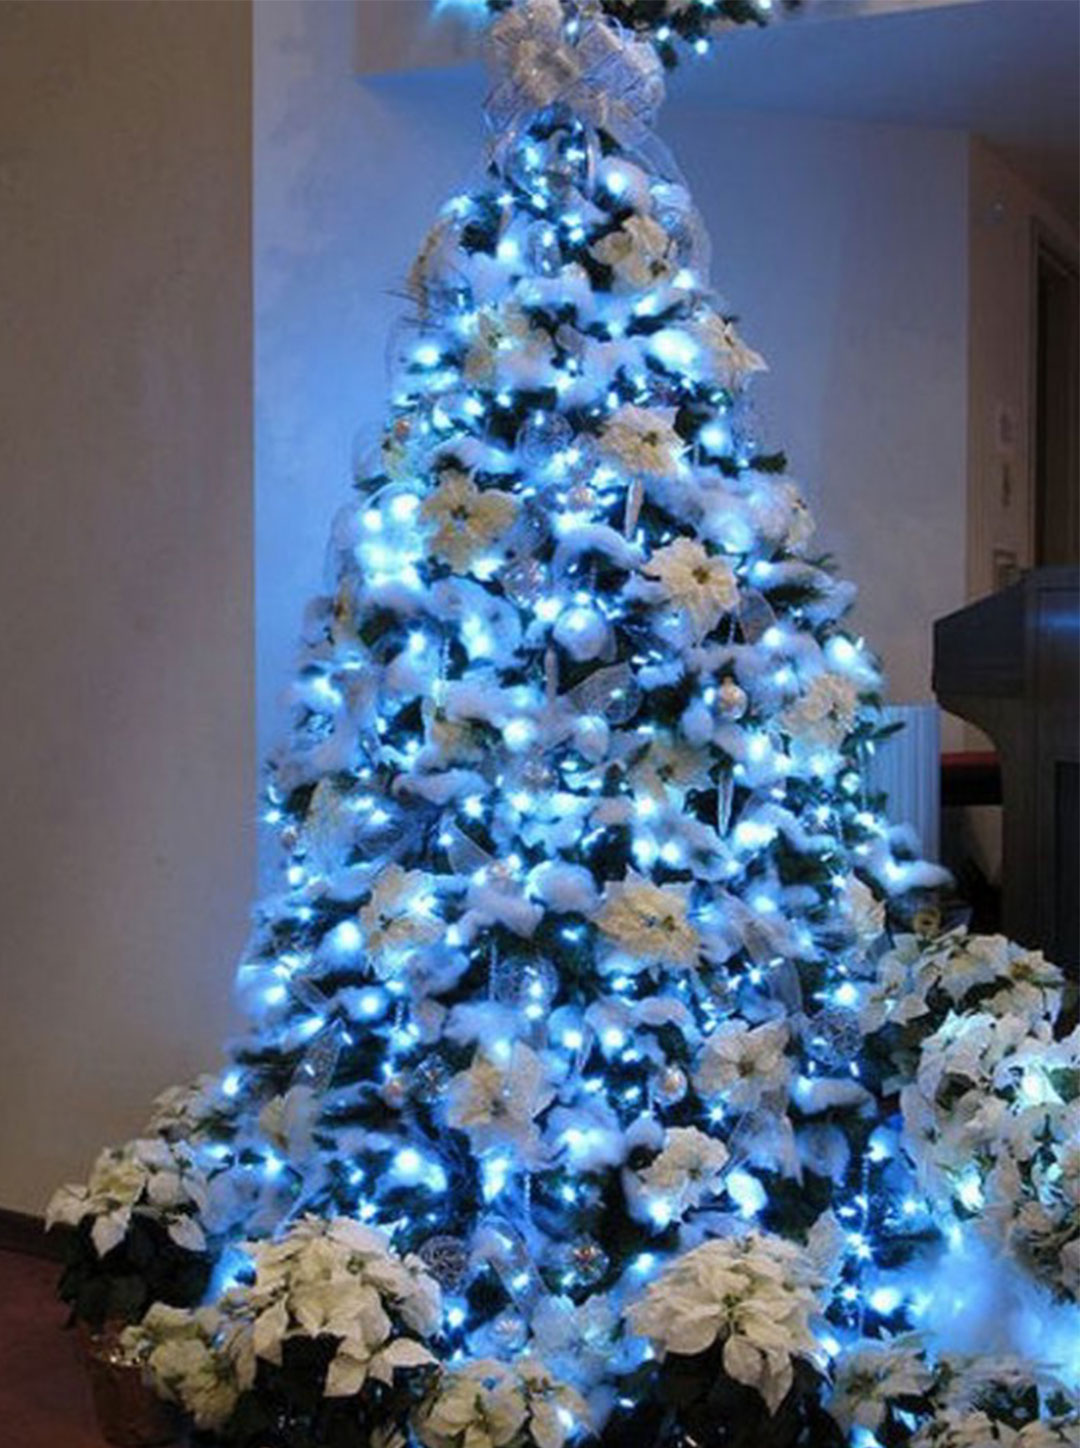 29 Inspirational Christmas Tree Decorating Ideas 2020 – 2021